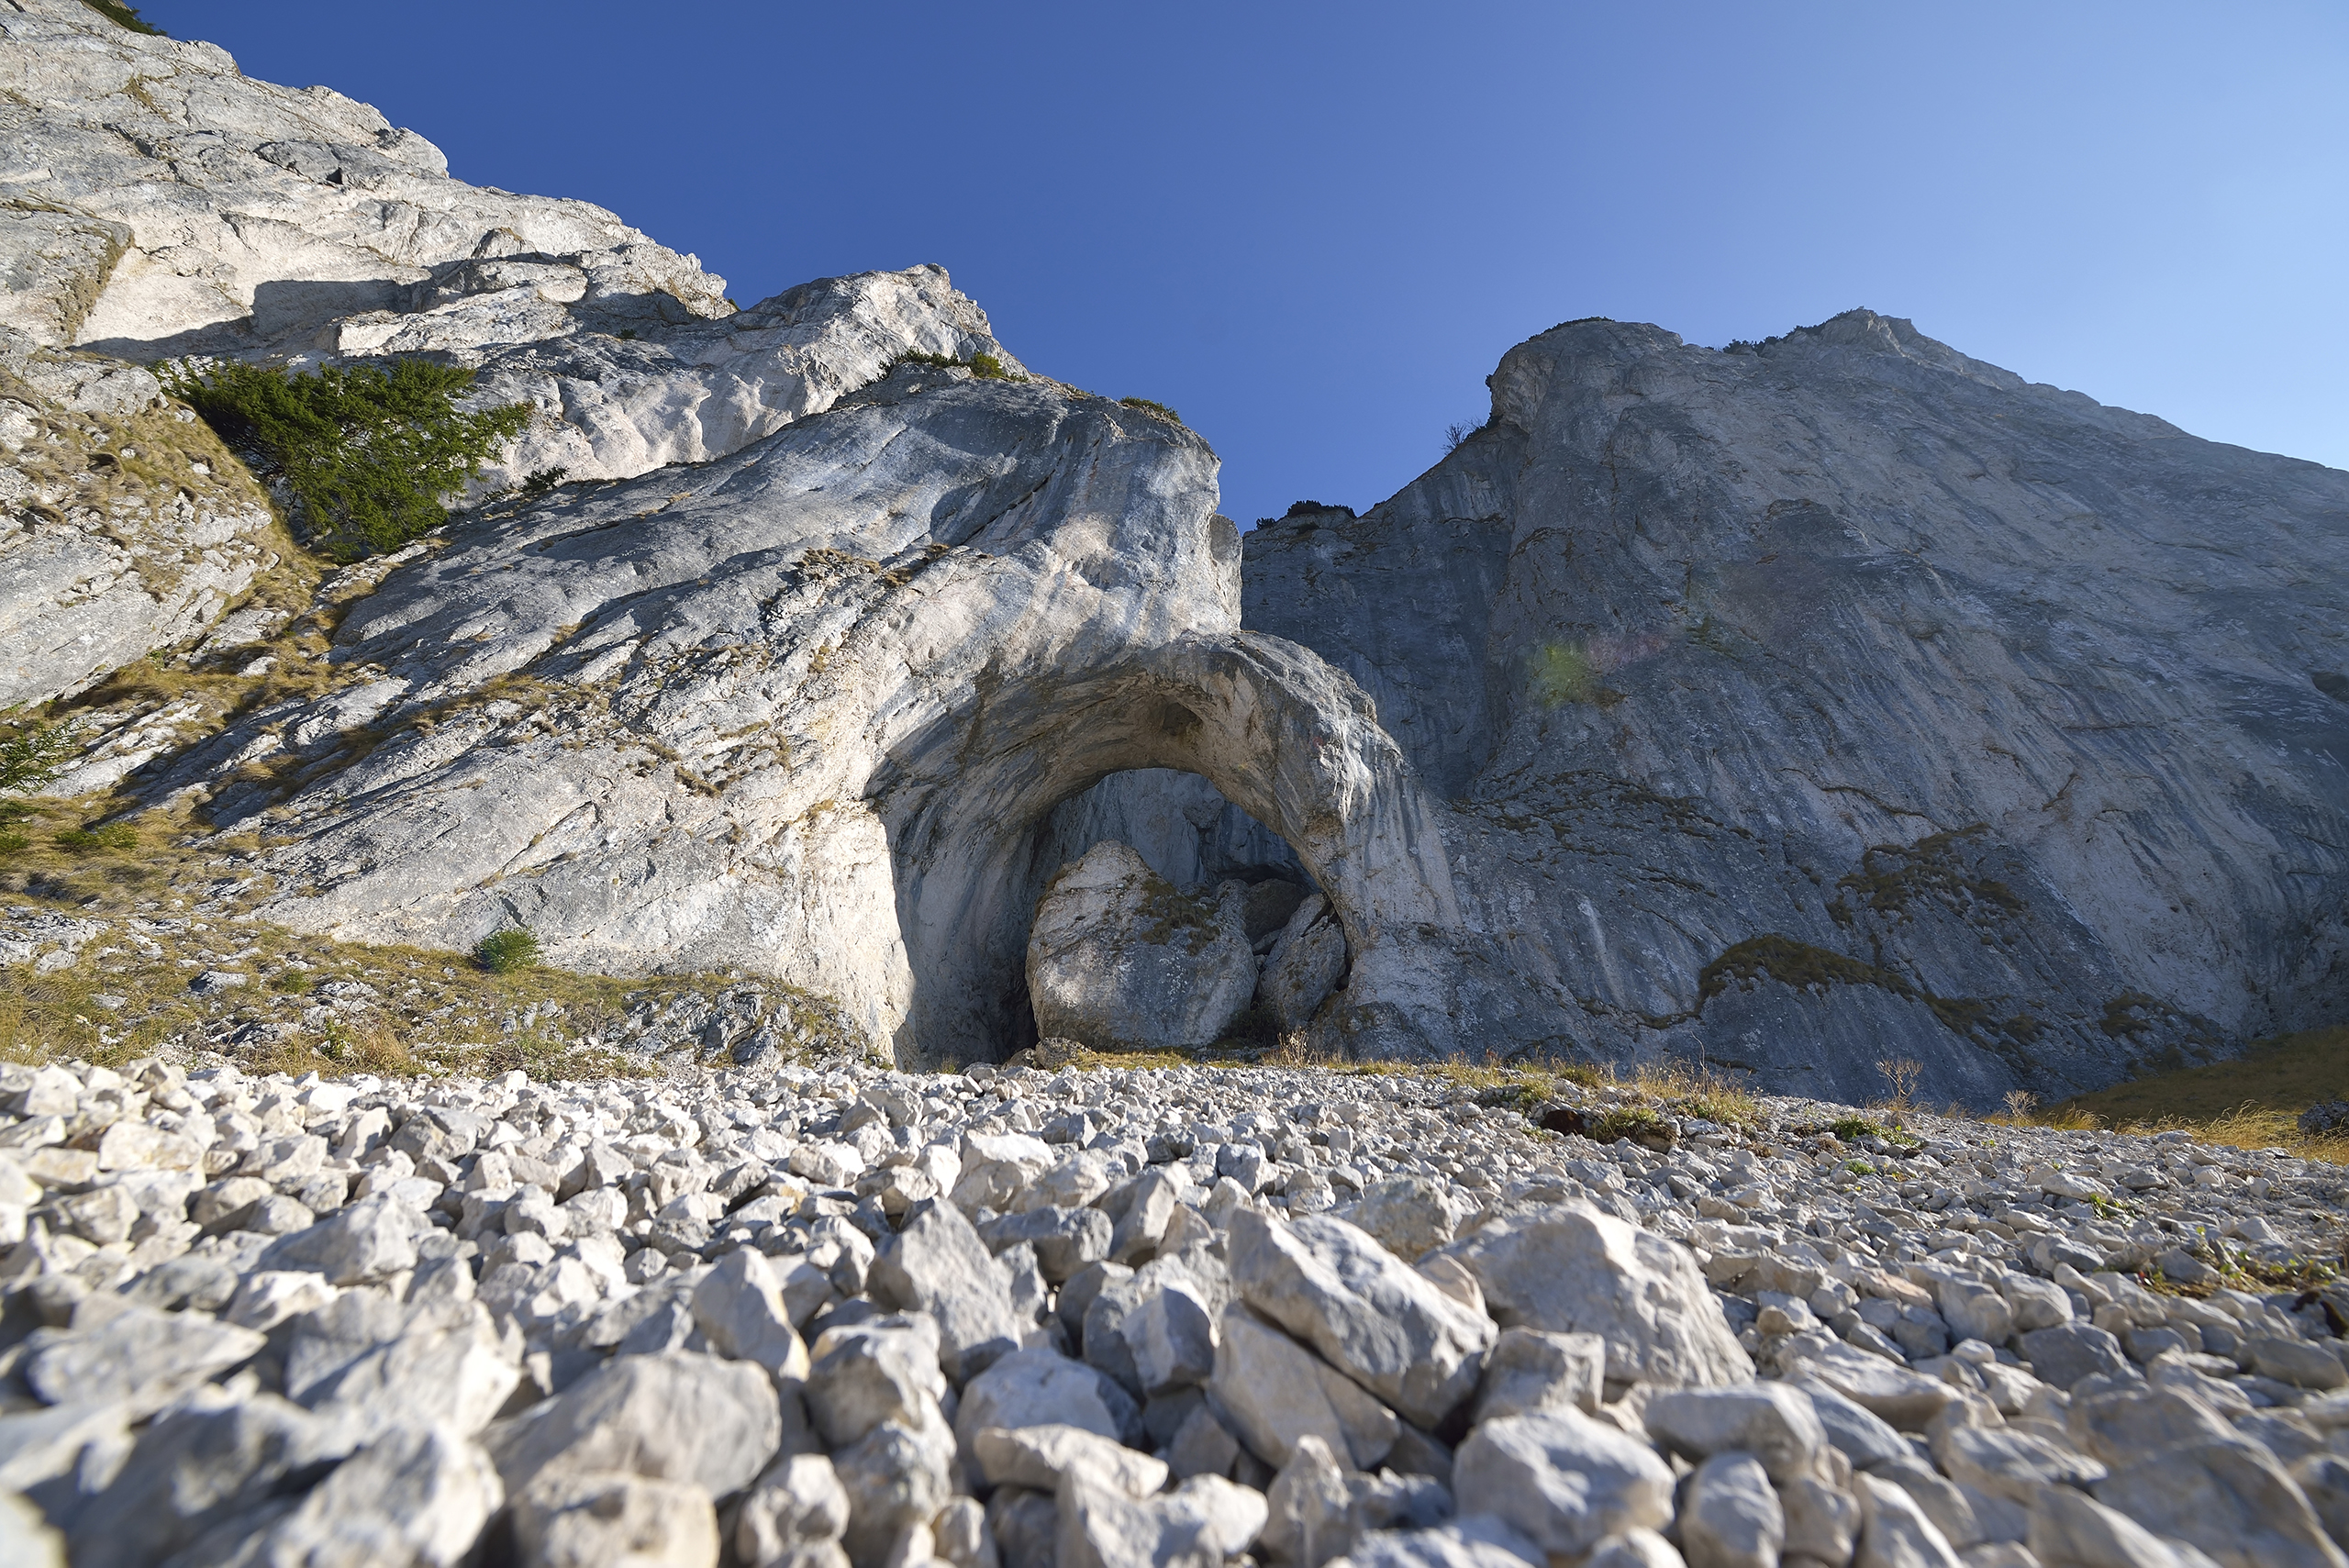 Cerdacul Stanciului cave, Piatra Craiului National Park, Romania. This park, whose name translate to  prince's stone , contains the southern Carpathian mountains. Bordered by glacial lakes, water has carved out a series of caves into the rock.